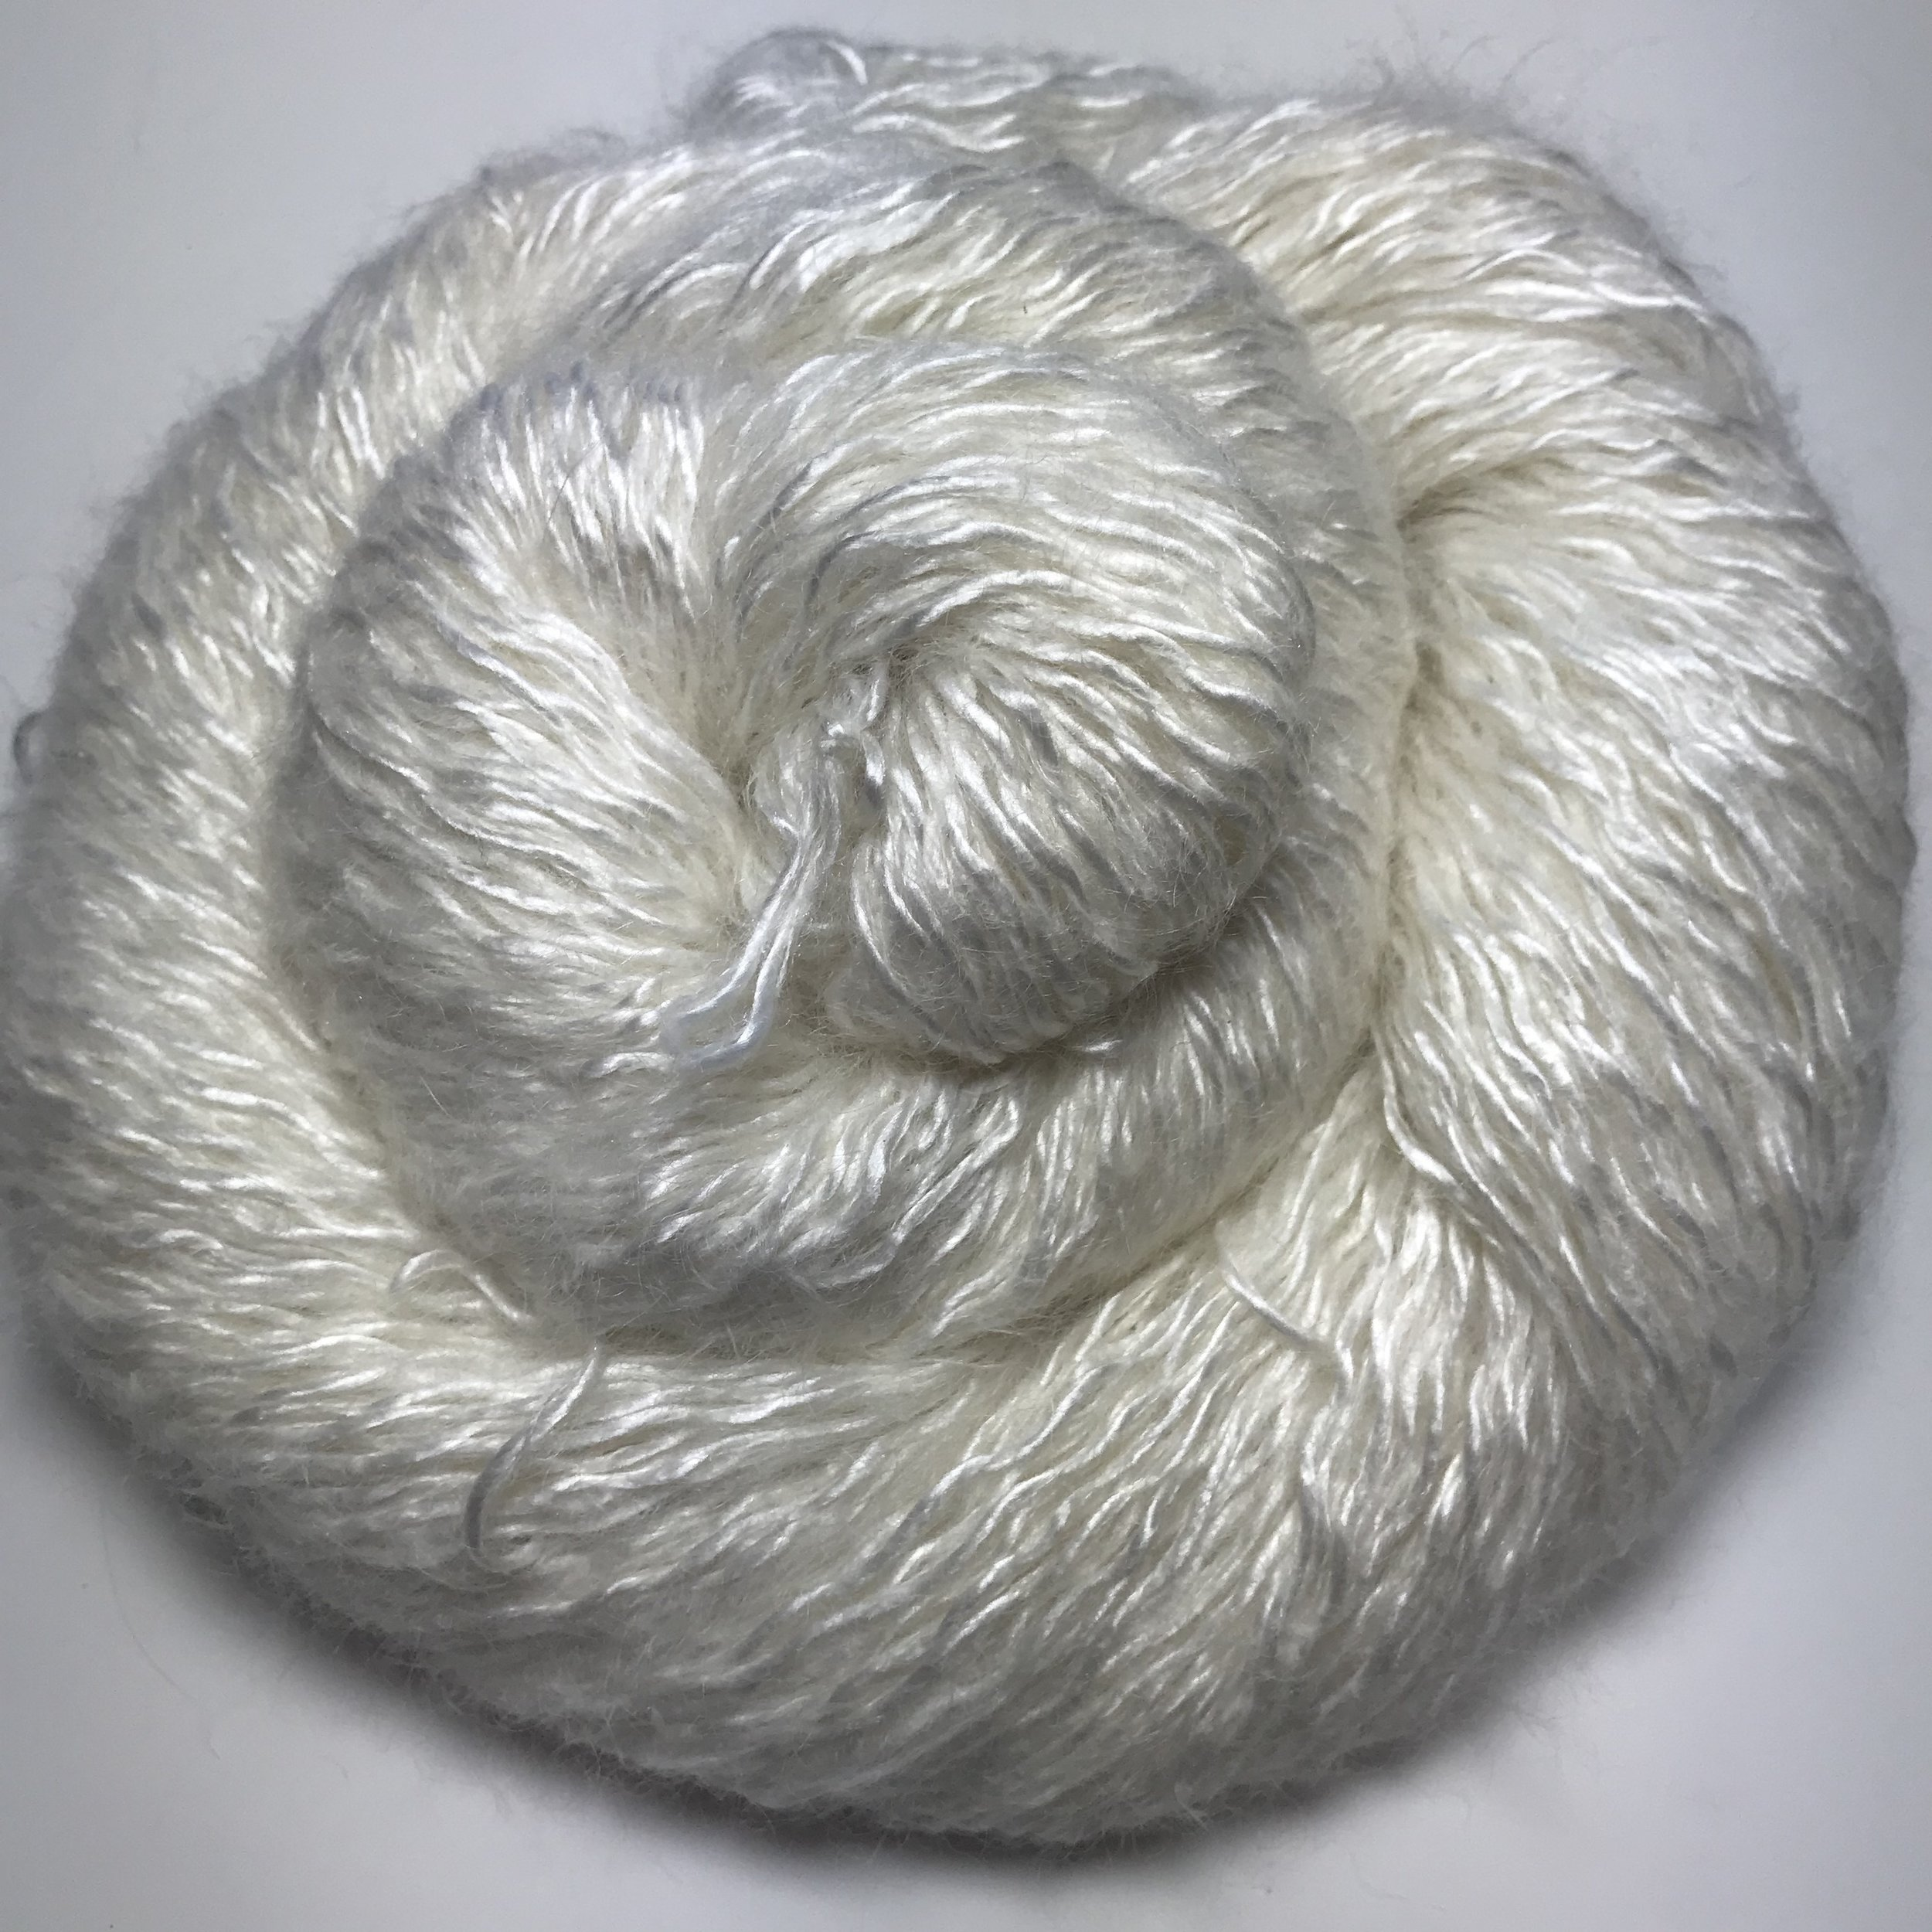 Liquid Gold - $40 69/22/9 Mulberry Silk/Kid Mohair/Nylon. Recommended Needle Size: 2.5-4mm (US 1-6). Gauge (stocking stitch): 28sts x 36 rows over 10cm (4 inches) on 3.25mm (US 3) needles.100g/350m/382yds